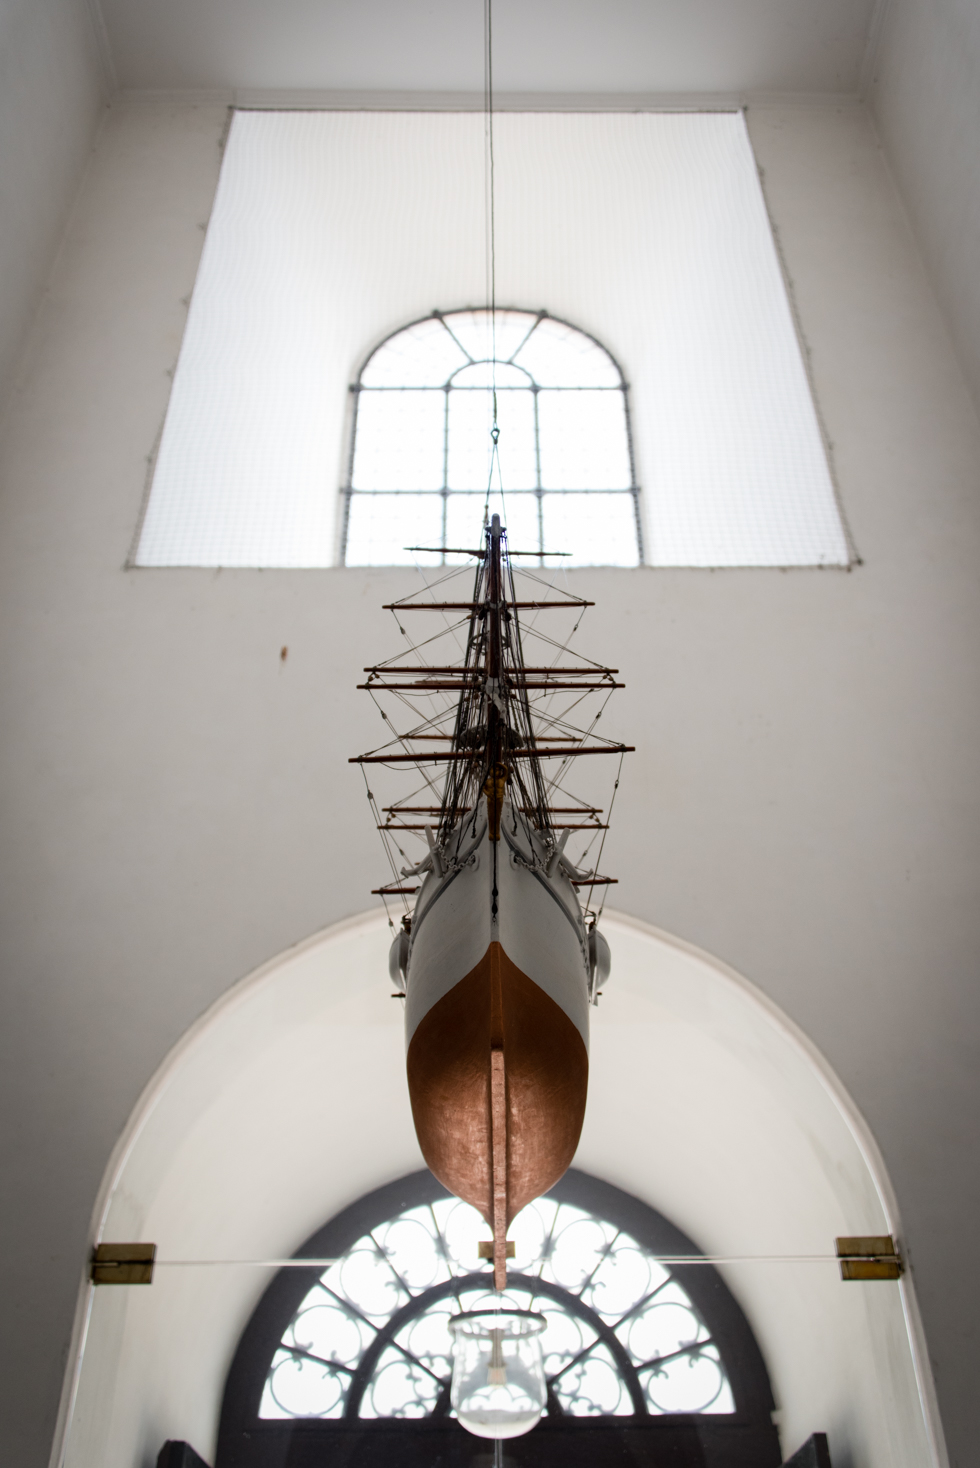 Boats in Churches